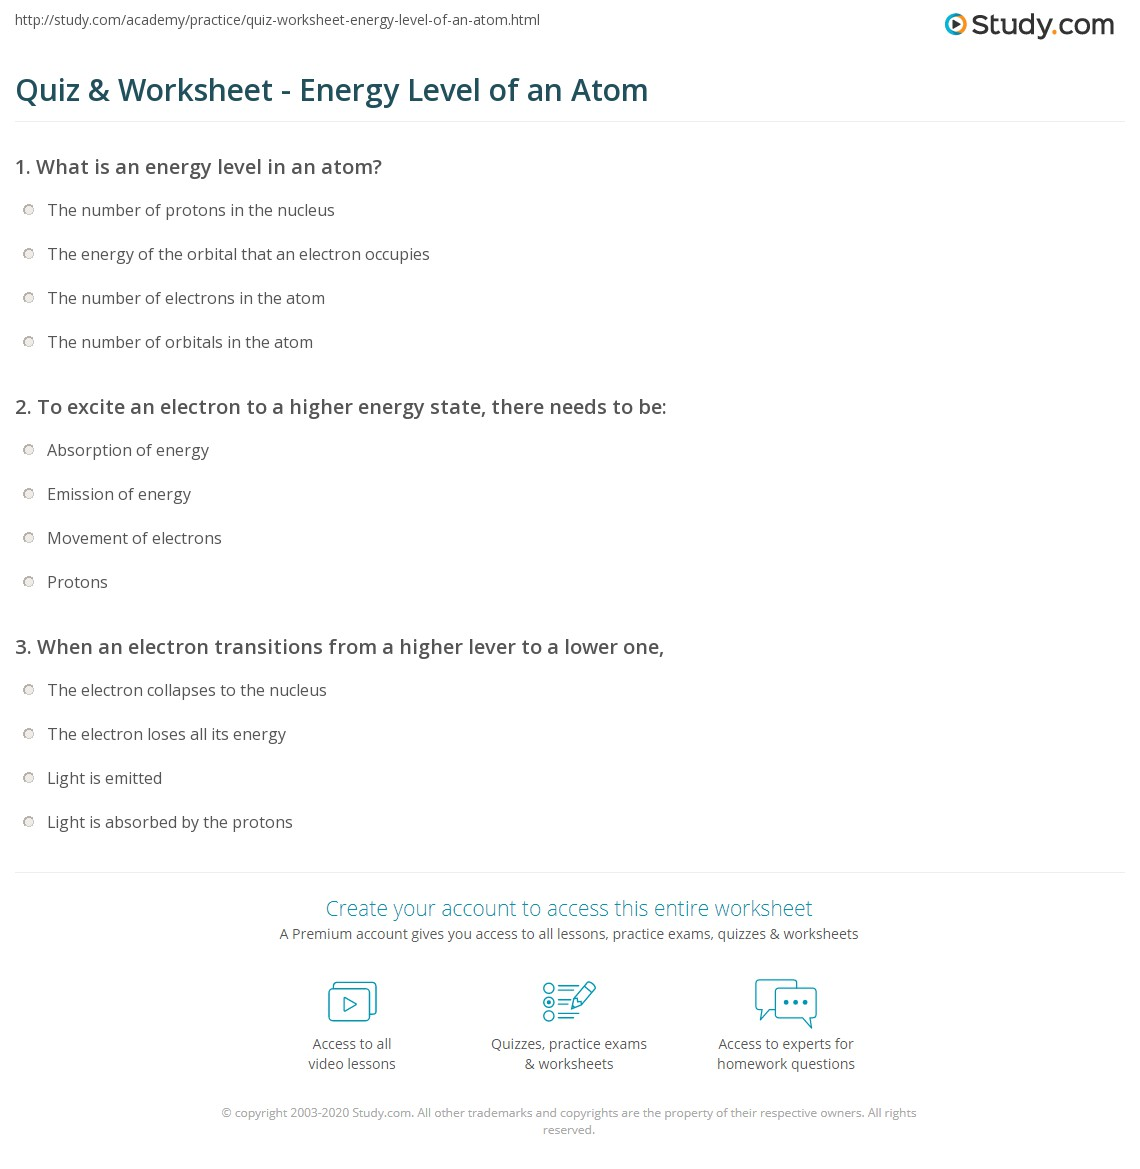 Quiz & Worksheet - Energy Level of an Atom | Study.com